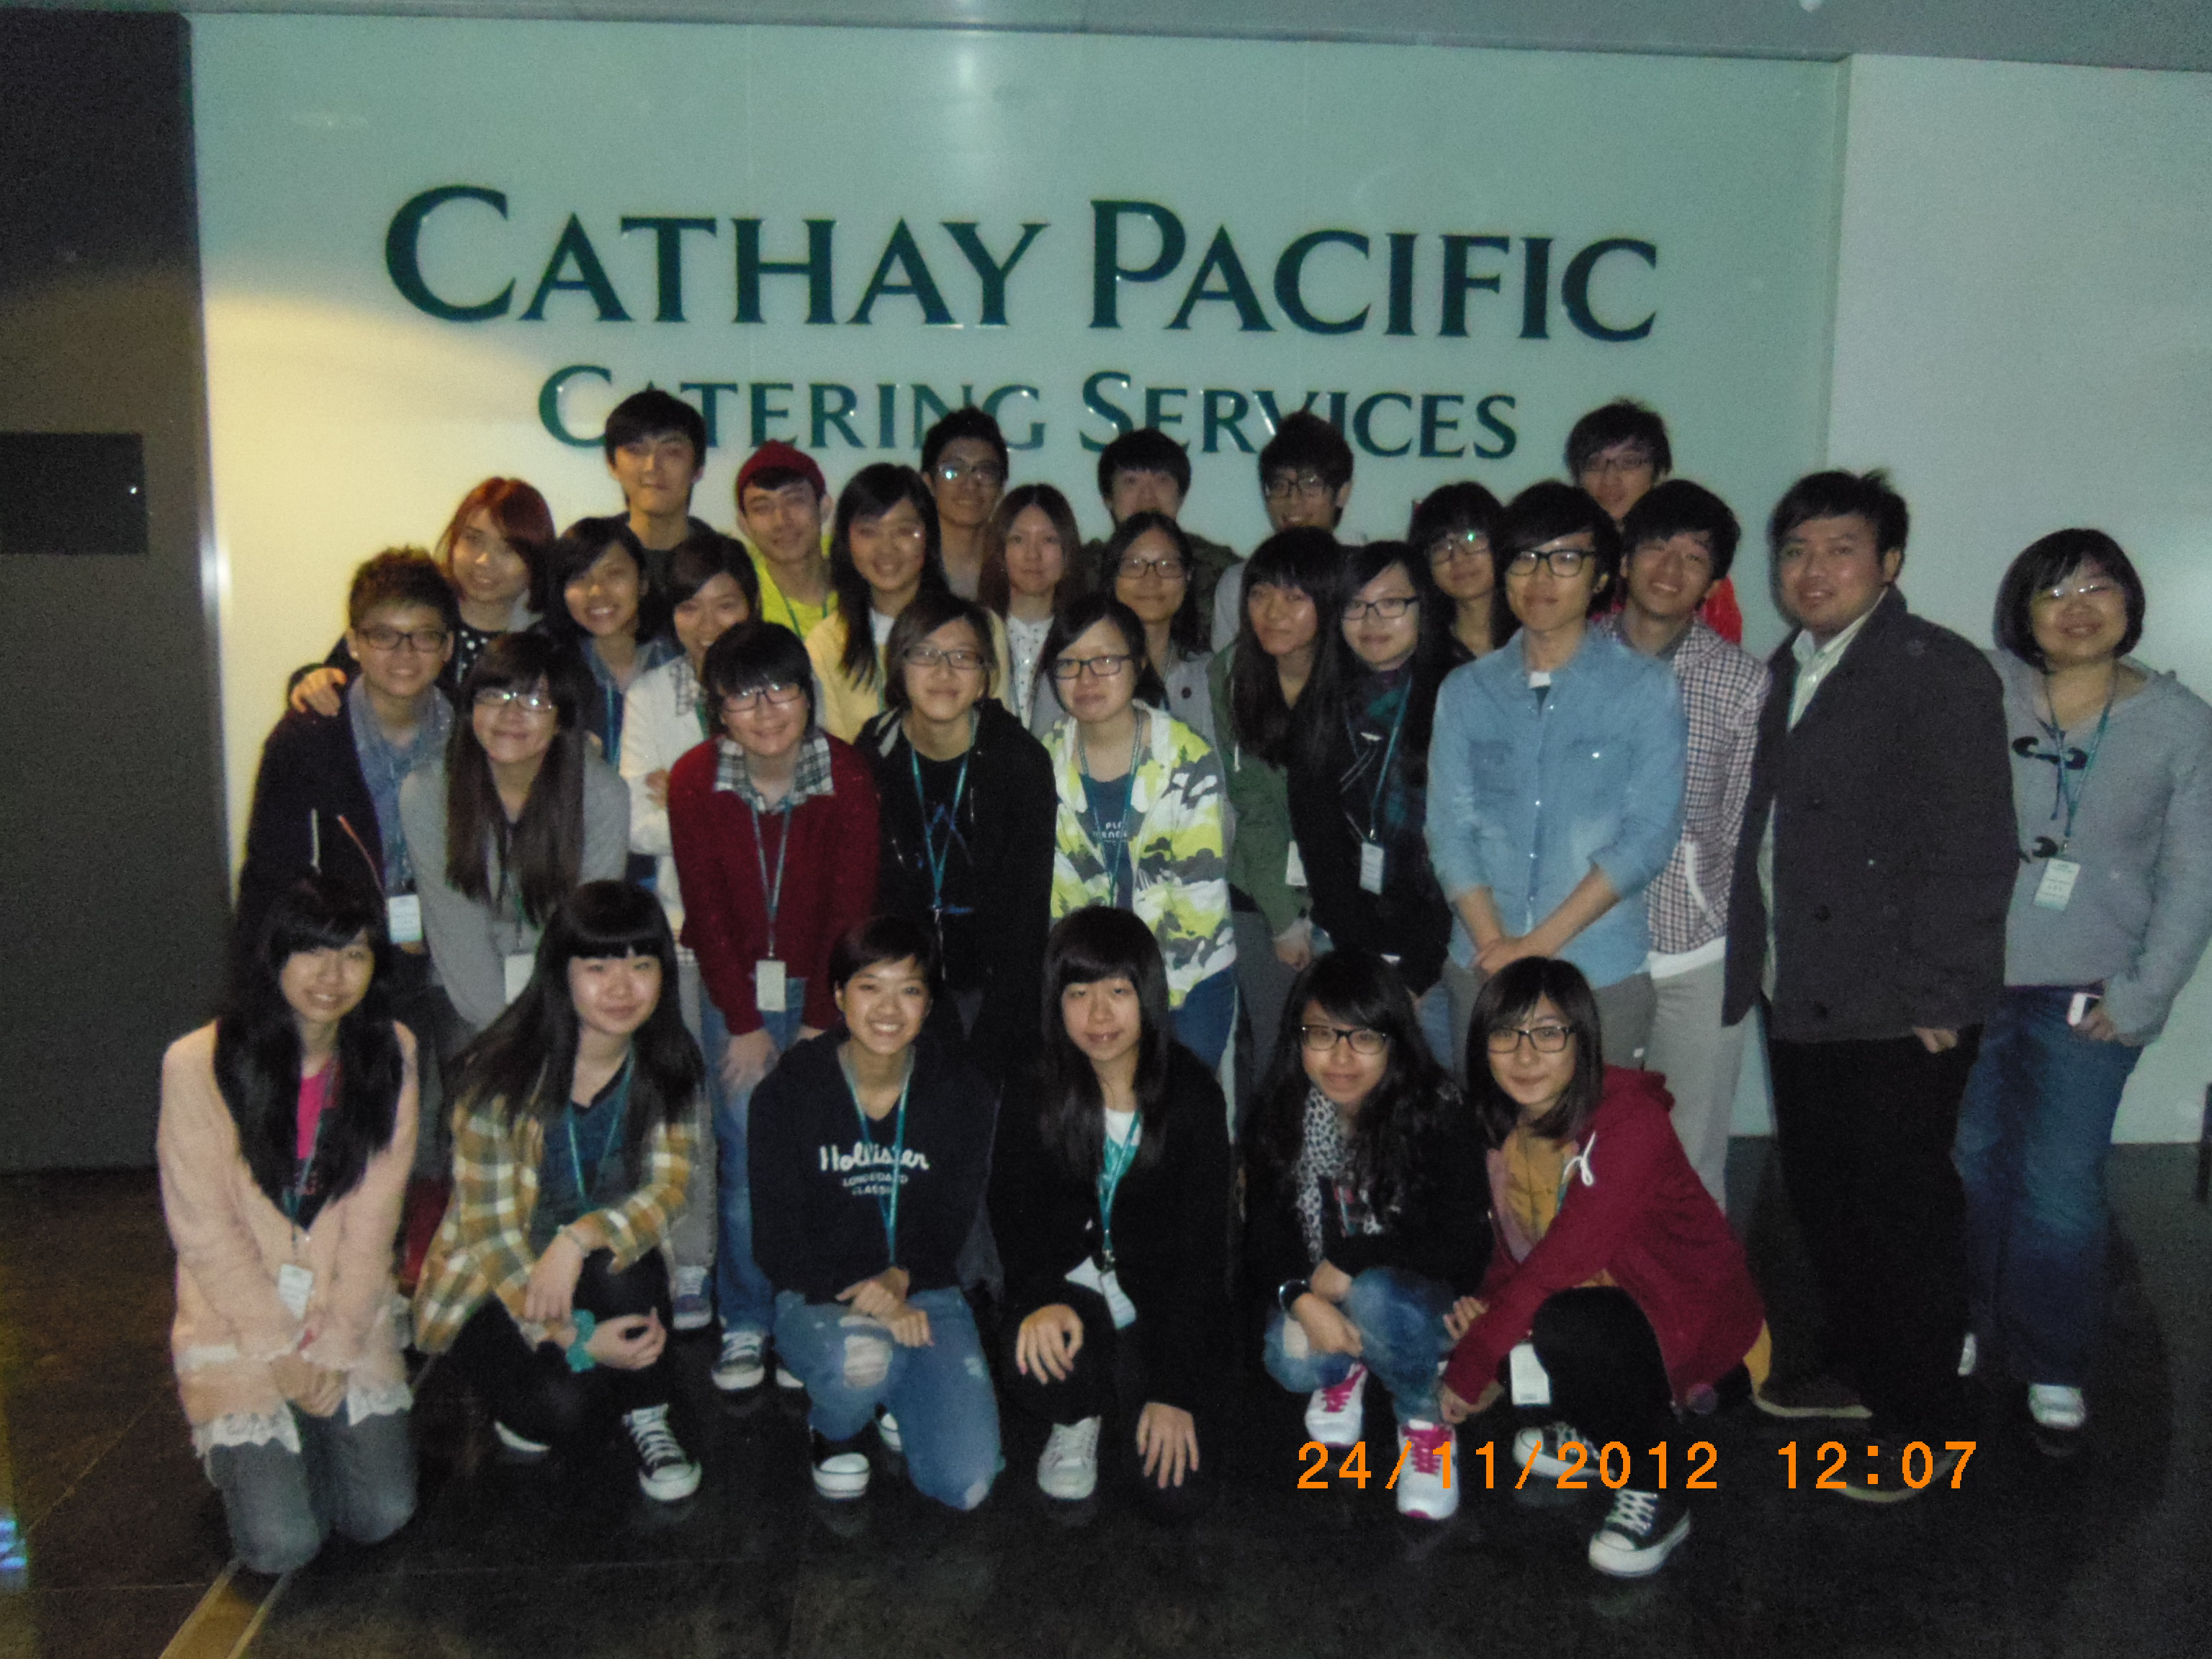 Visit to Cathay Pacific Catering Services in Tung Chung - Photo - 3